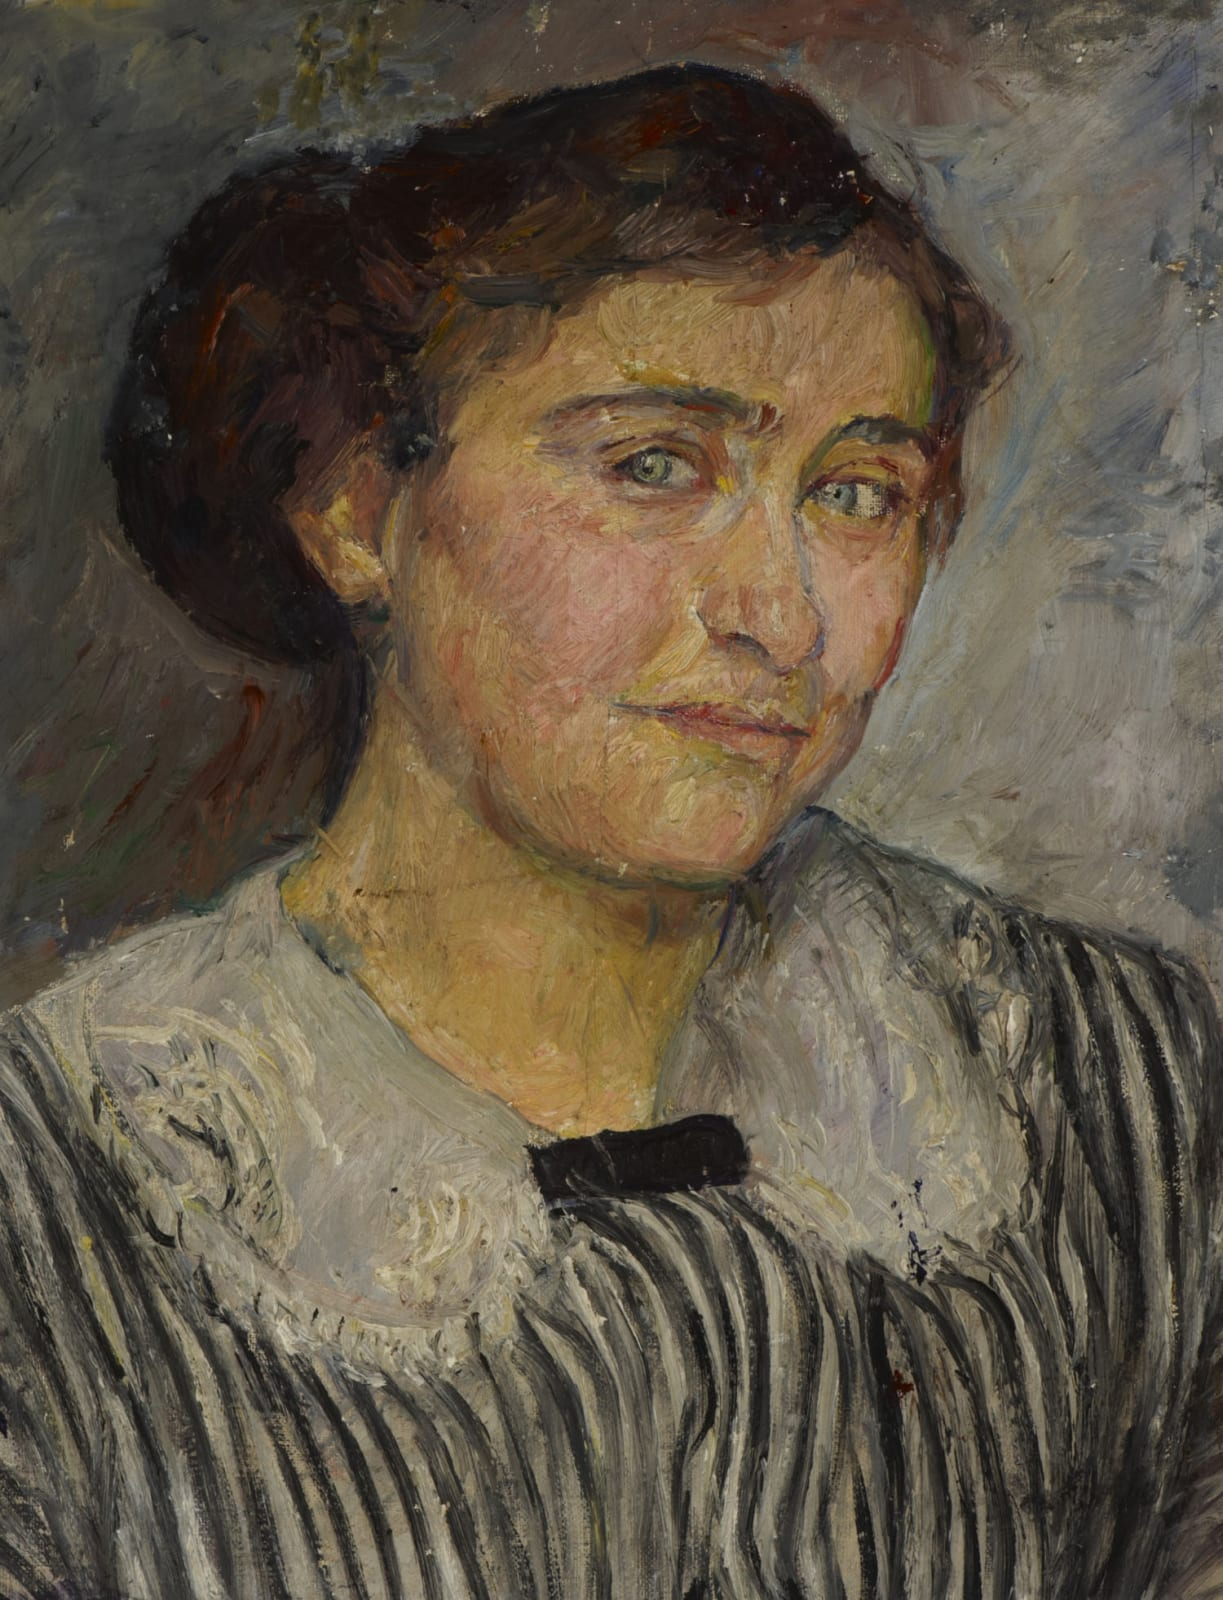 Adèle Reifenberg (1893-1986) Portrait of the Artist's Sister-in-Law, Elise Reifenberg (Gabriele Tergit) n.d. Oil on canvas 46 x 36 cm Ben Uri Collection © Adèle Reifenberg estate To see and discover more about this artist click here